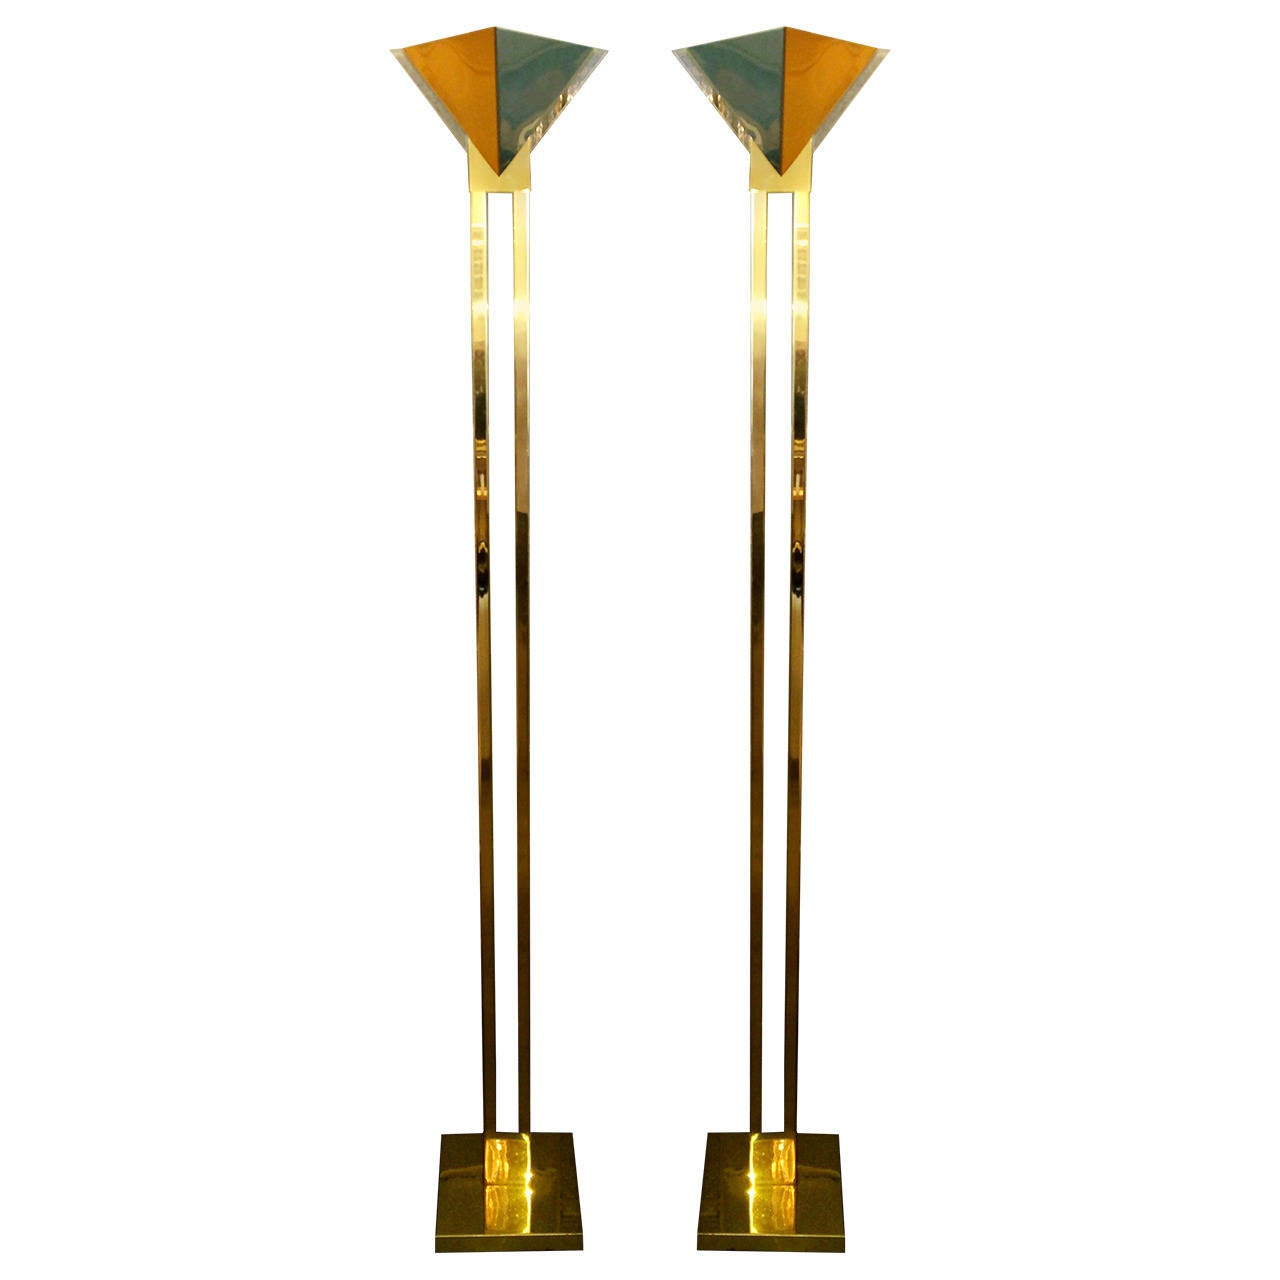 Mid Century Modern Brass & Lucite Torchiere Floor Lamps by Sonneman for Kovacs